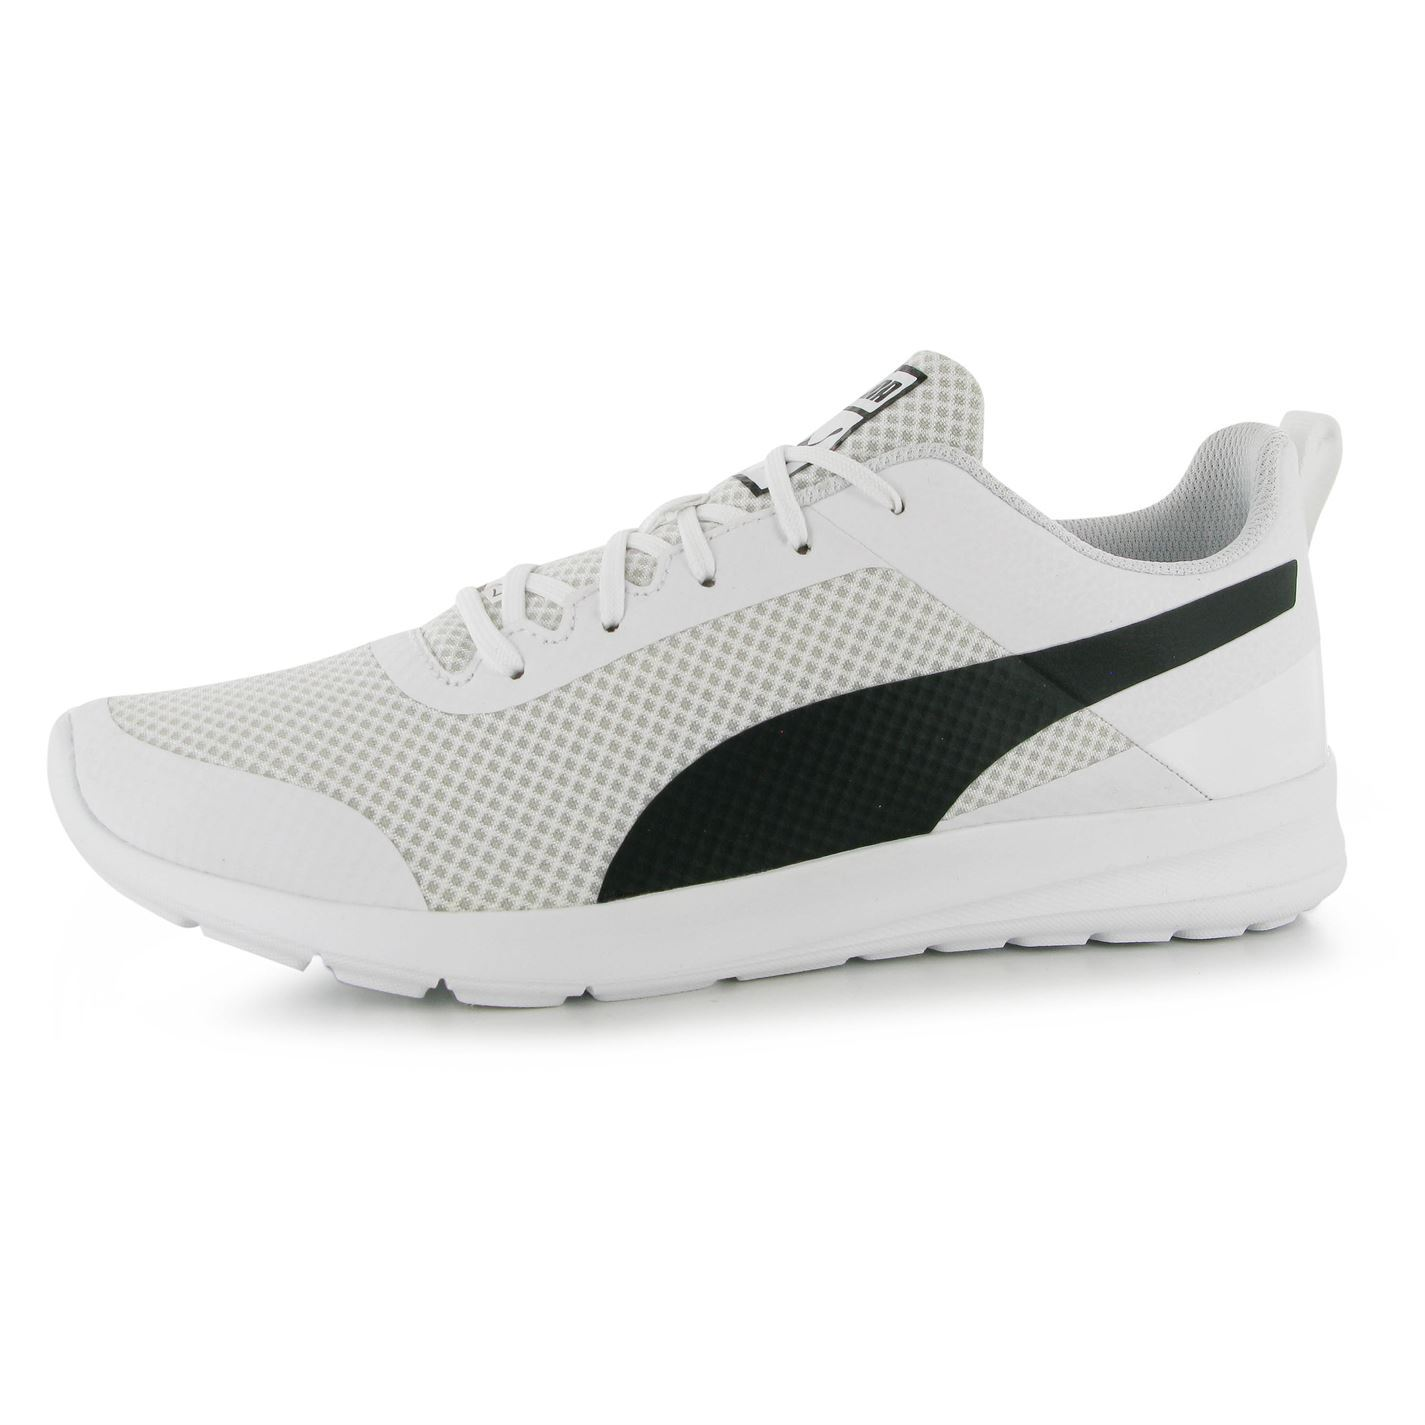 UK Shoes - Puma Trax Runner Trainers Mens White/Black Sports Shoes Sneakers Footwear